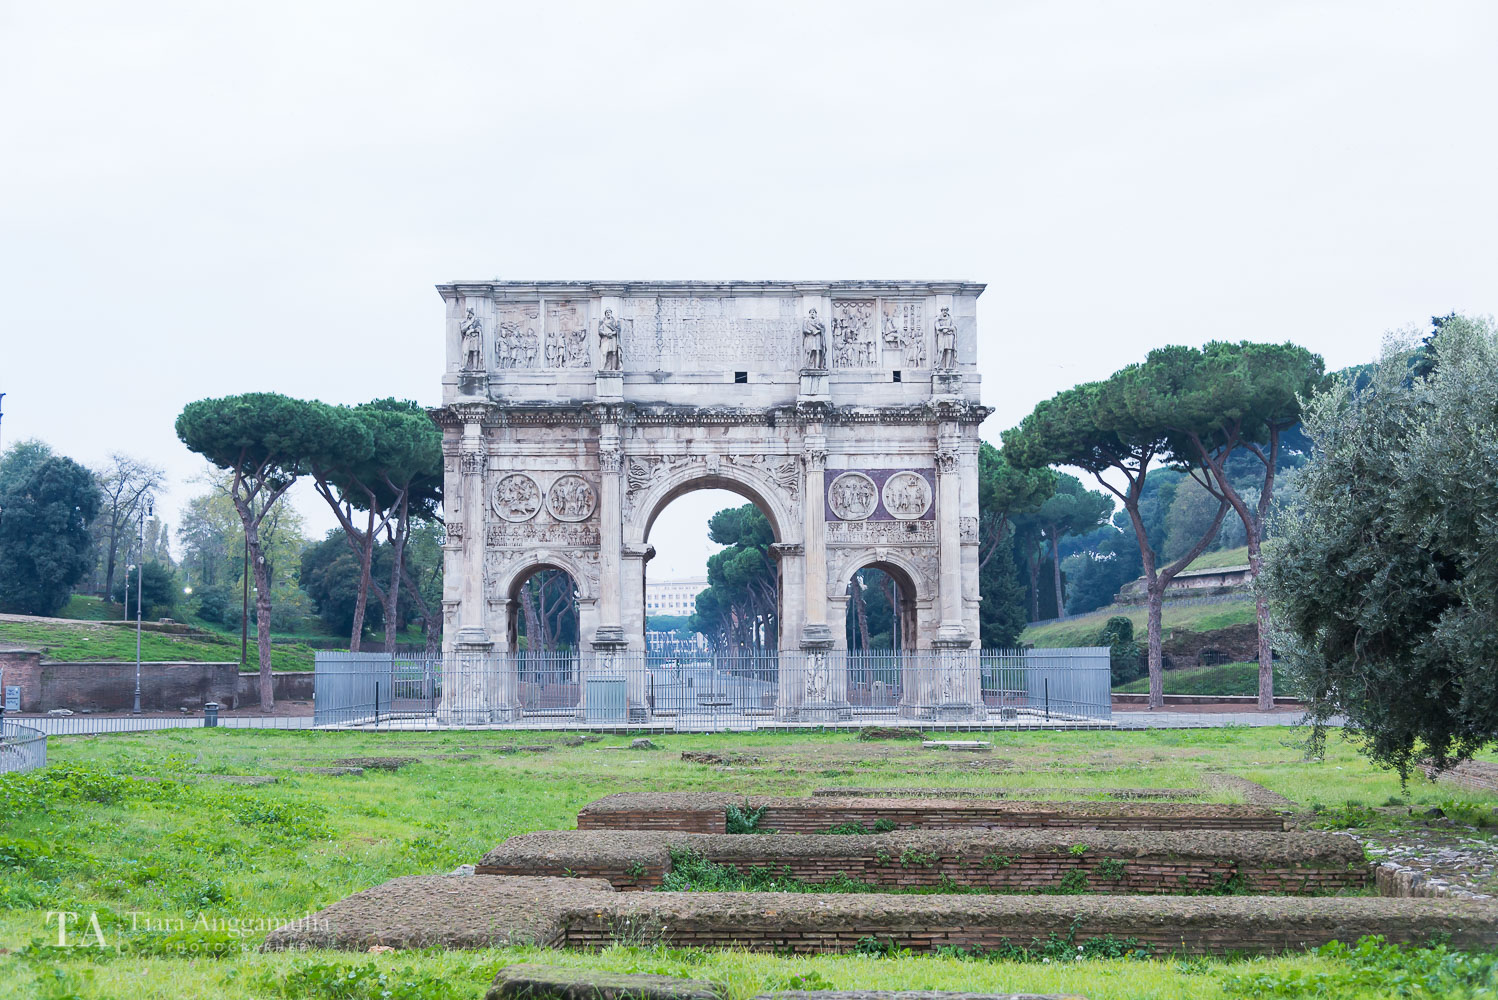 The arch near Colosseum.